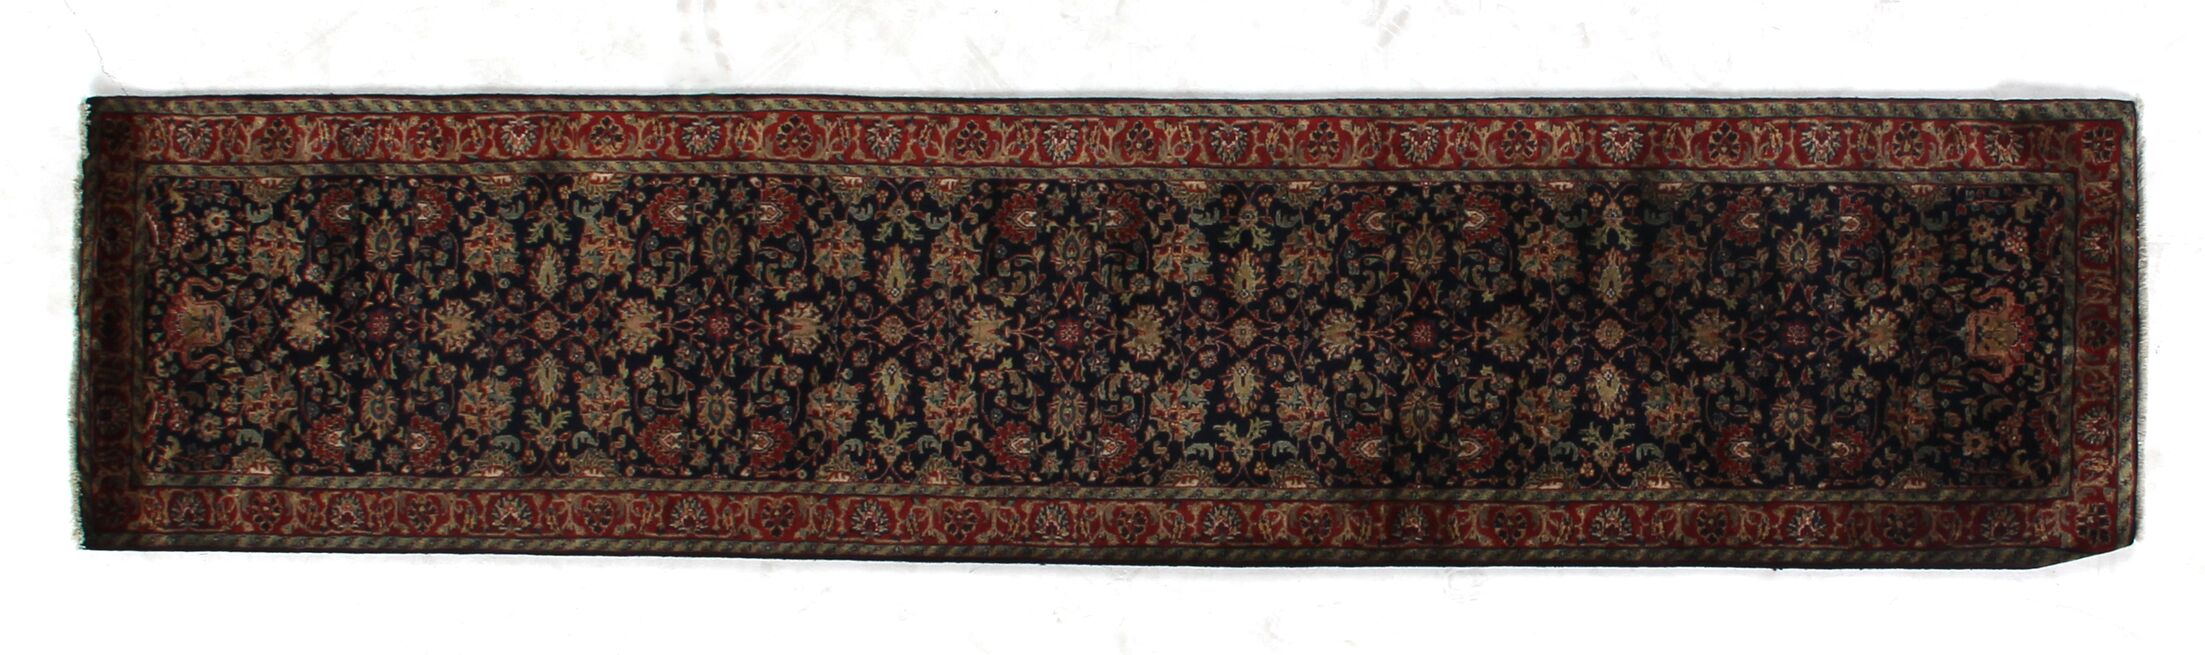 Super Mashad Hand-Knotted Wool Navy/Red Area Rug Rug Size: Runner 2'6